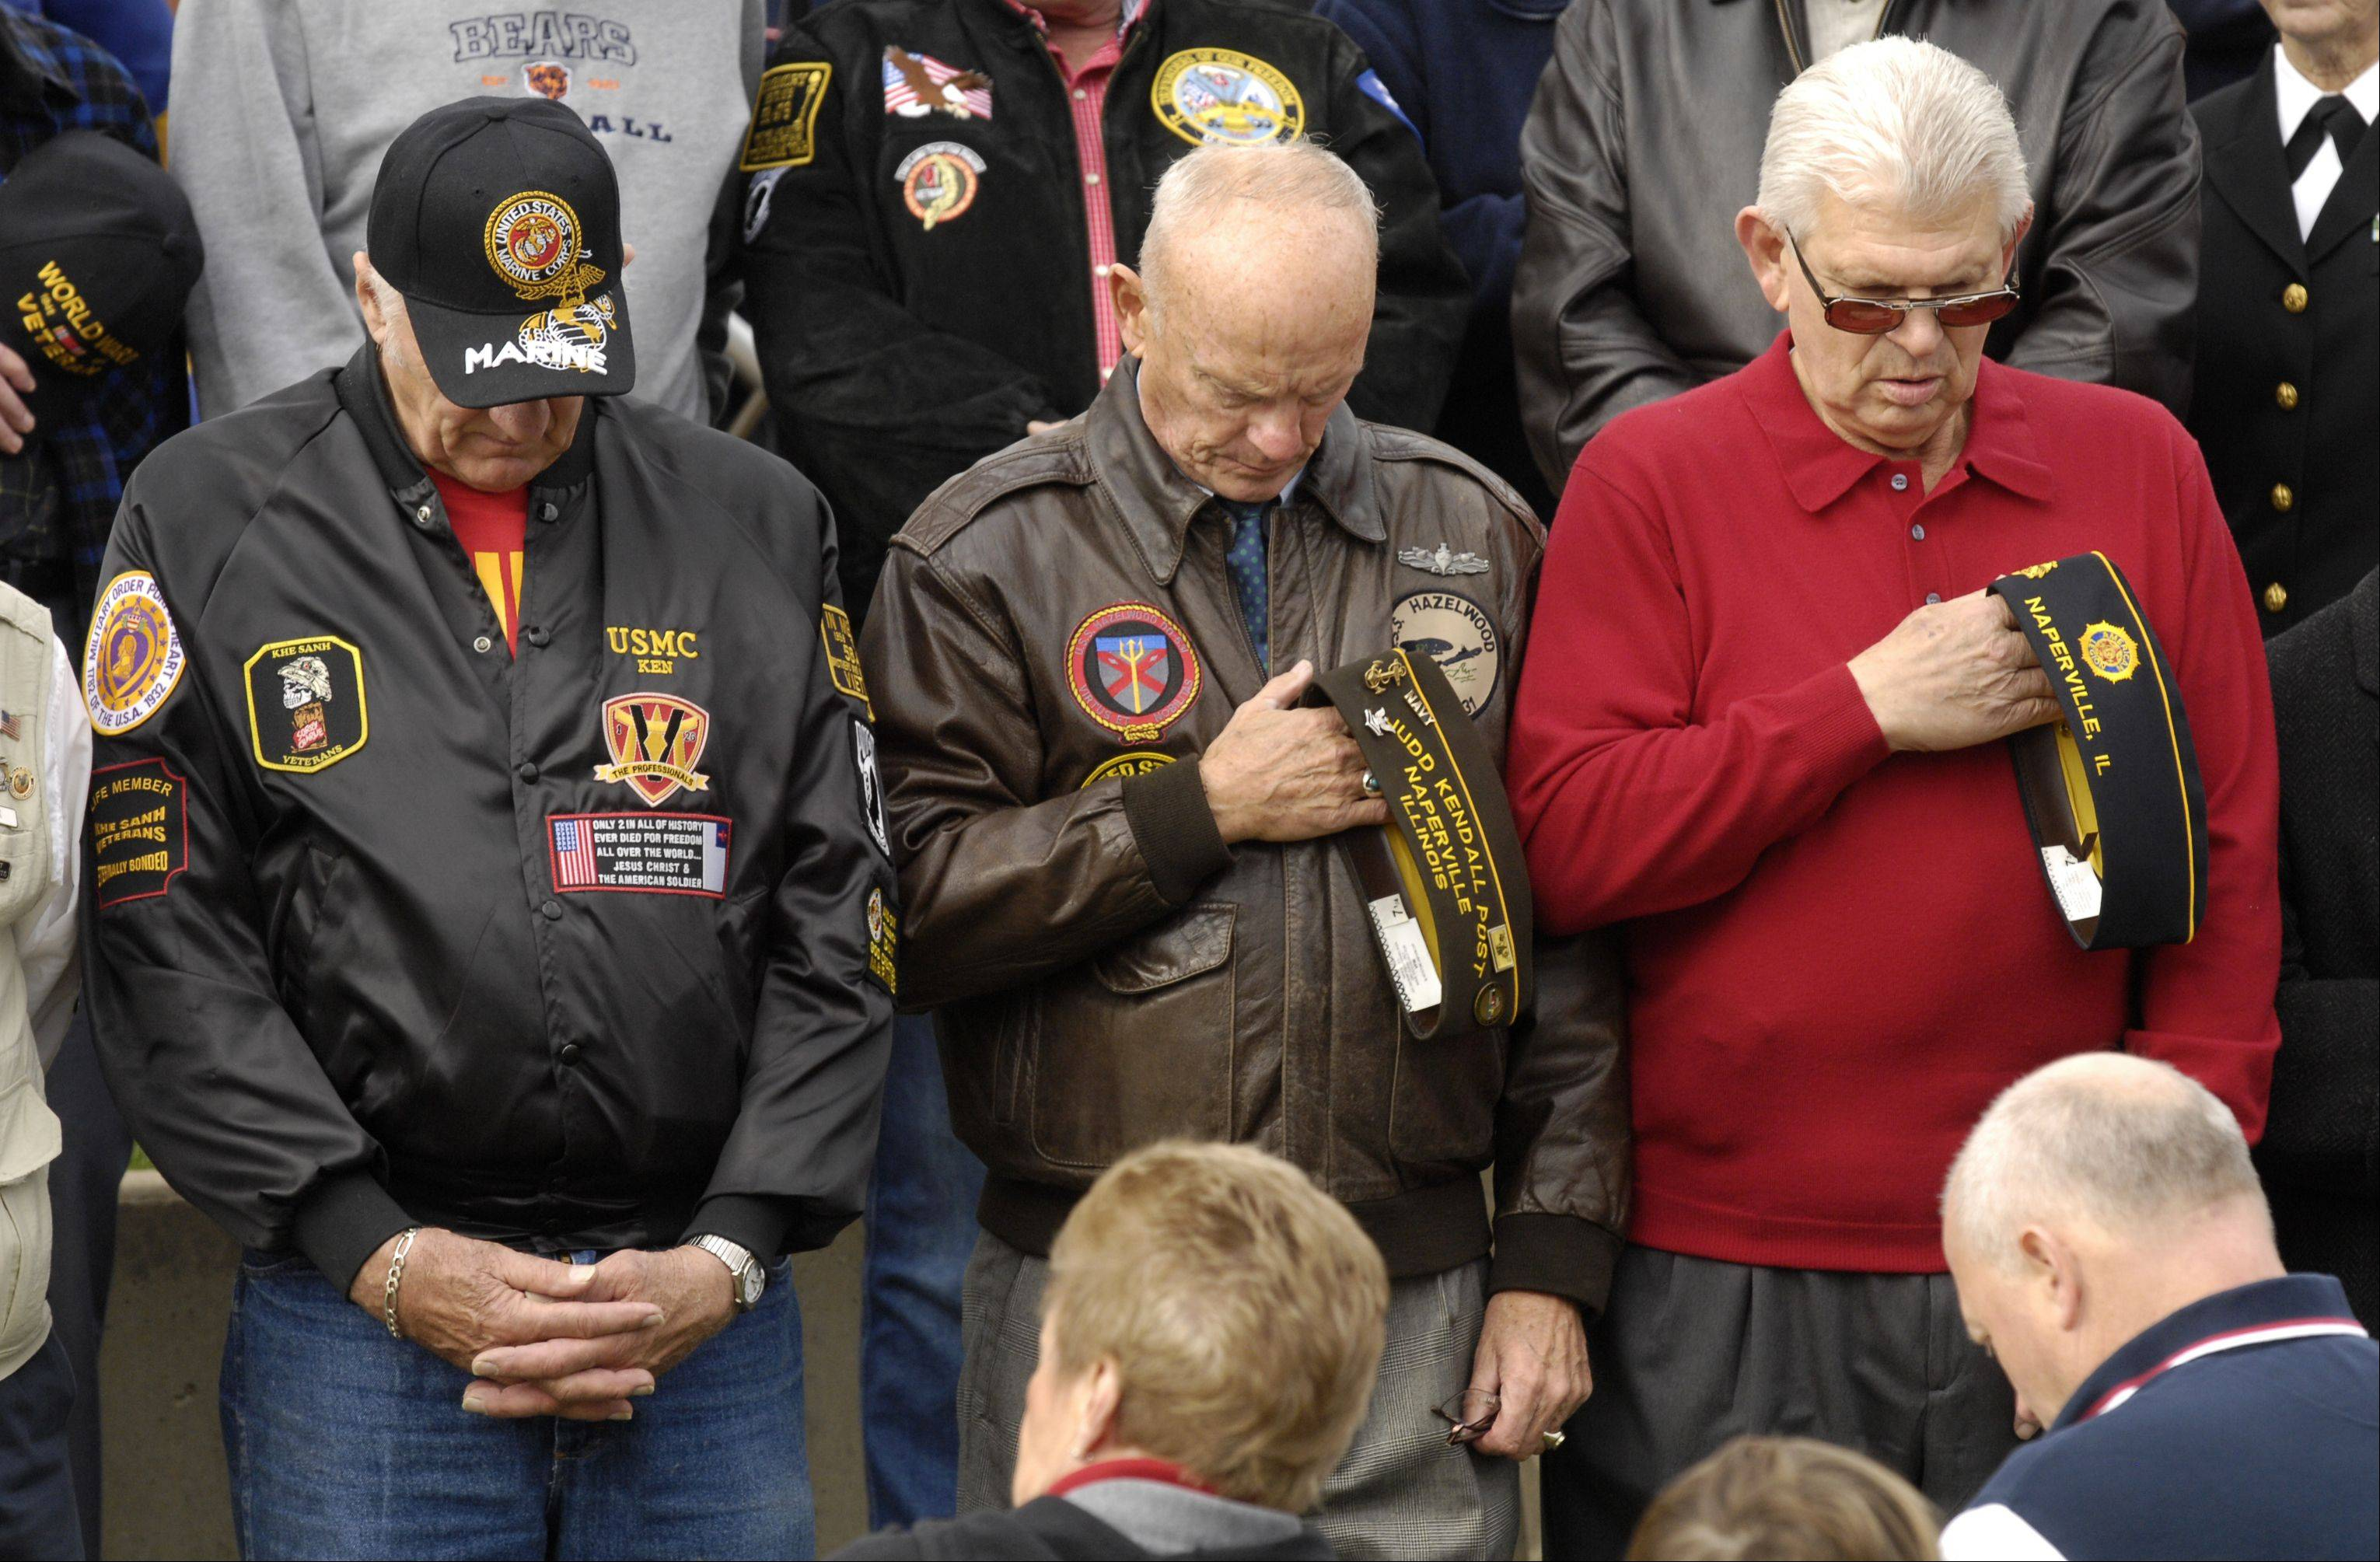 Veterans bow their head during the Naperville Veterans Day Ceremony, Sunday.